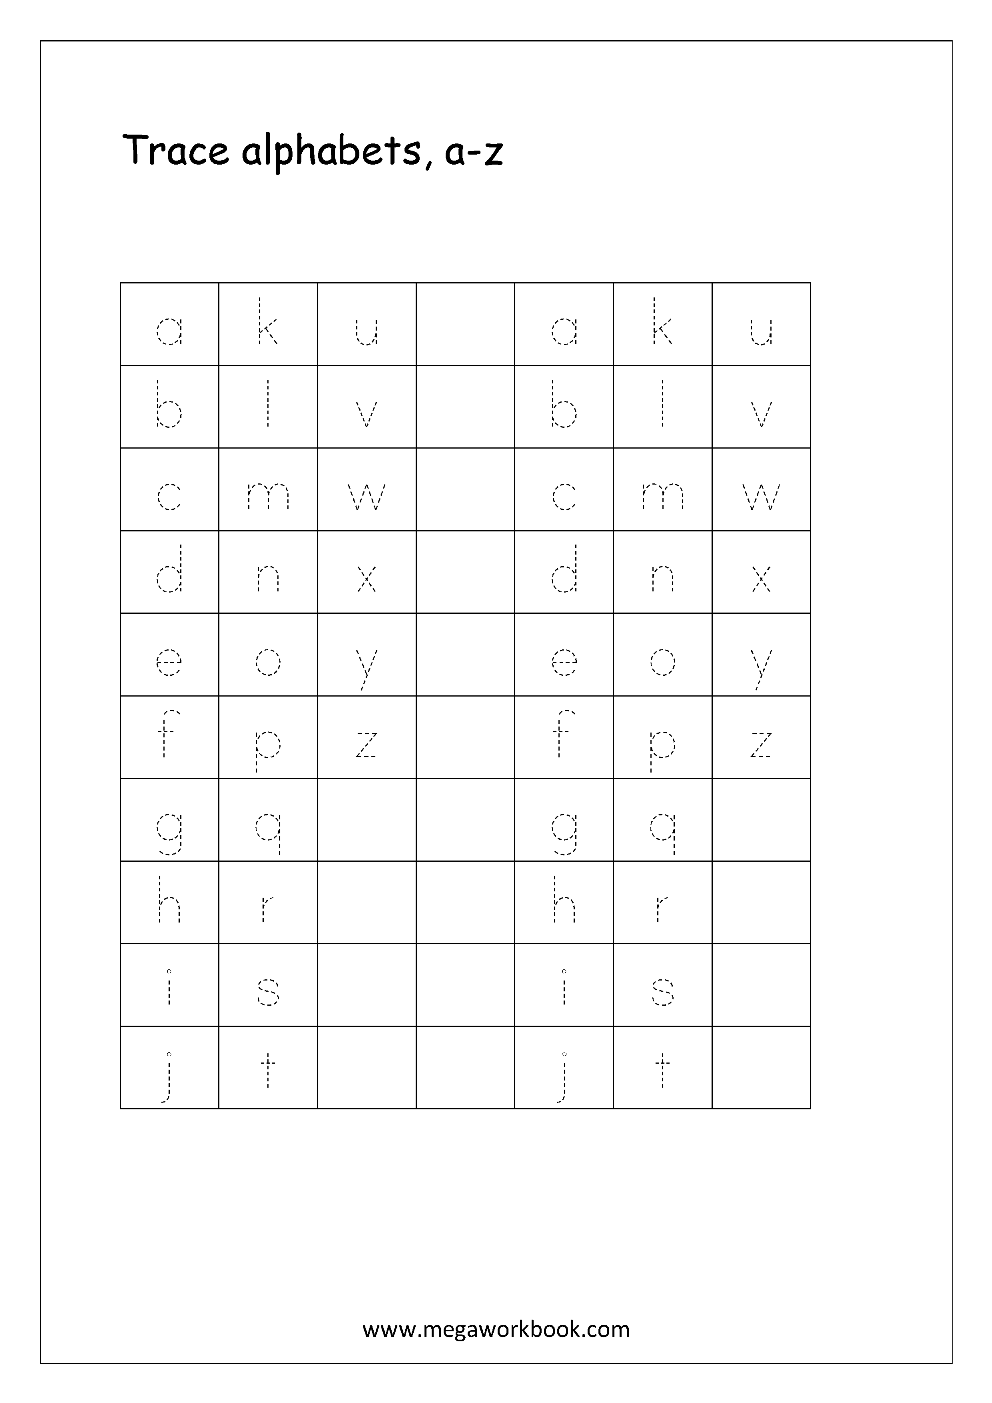 alphabet worksheets a-z